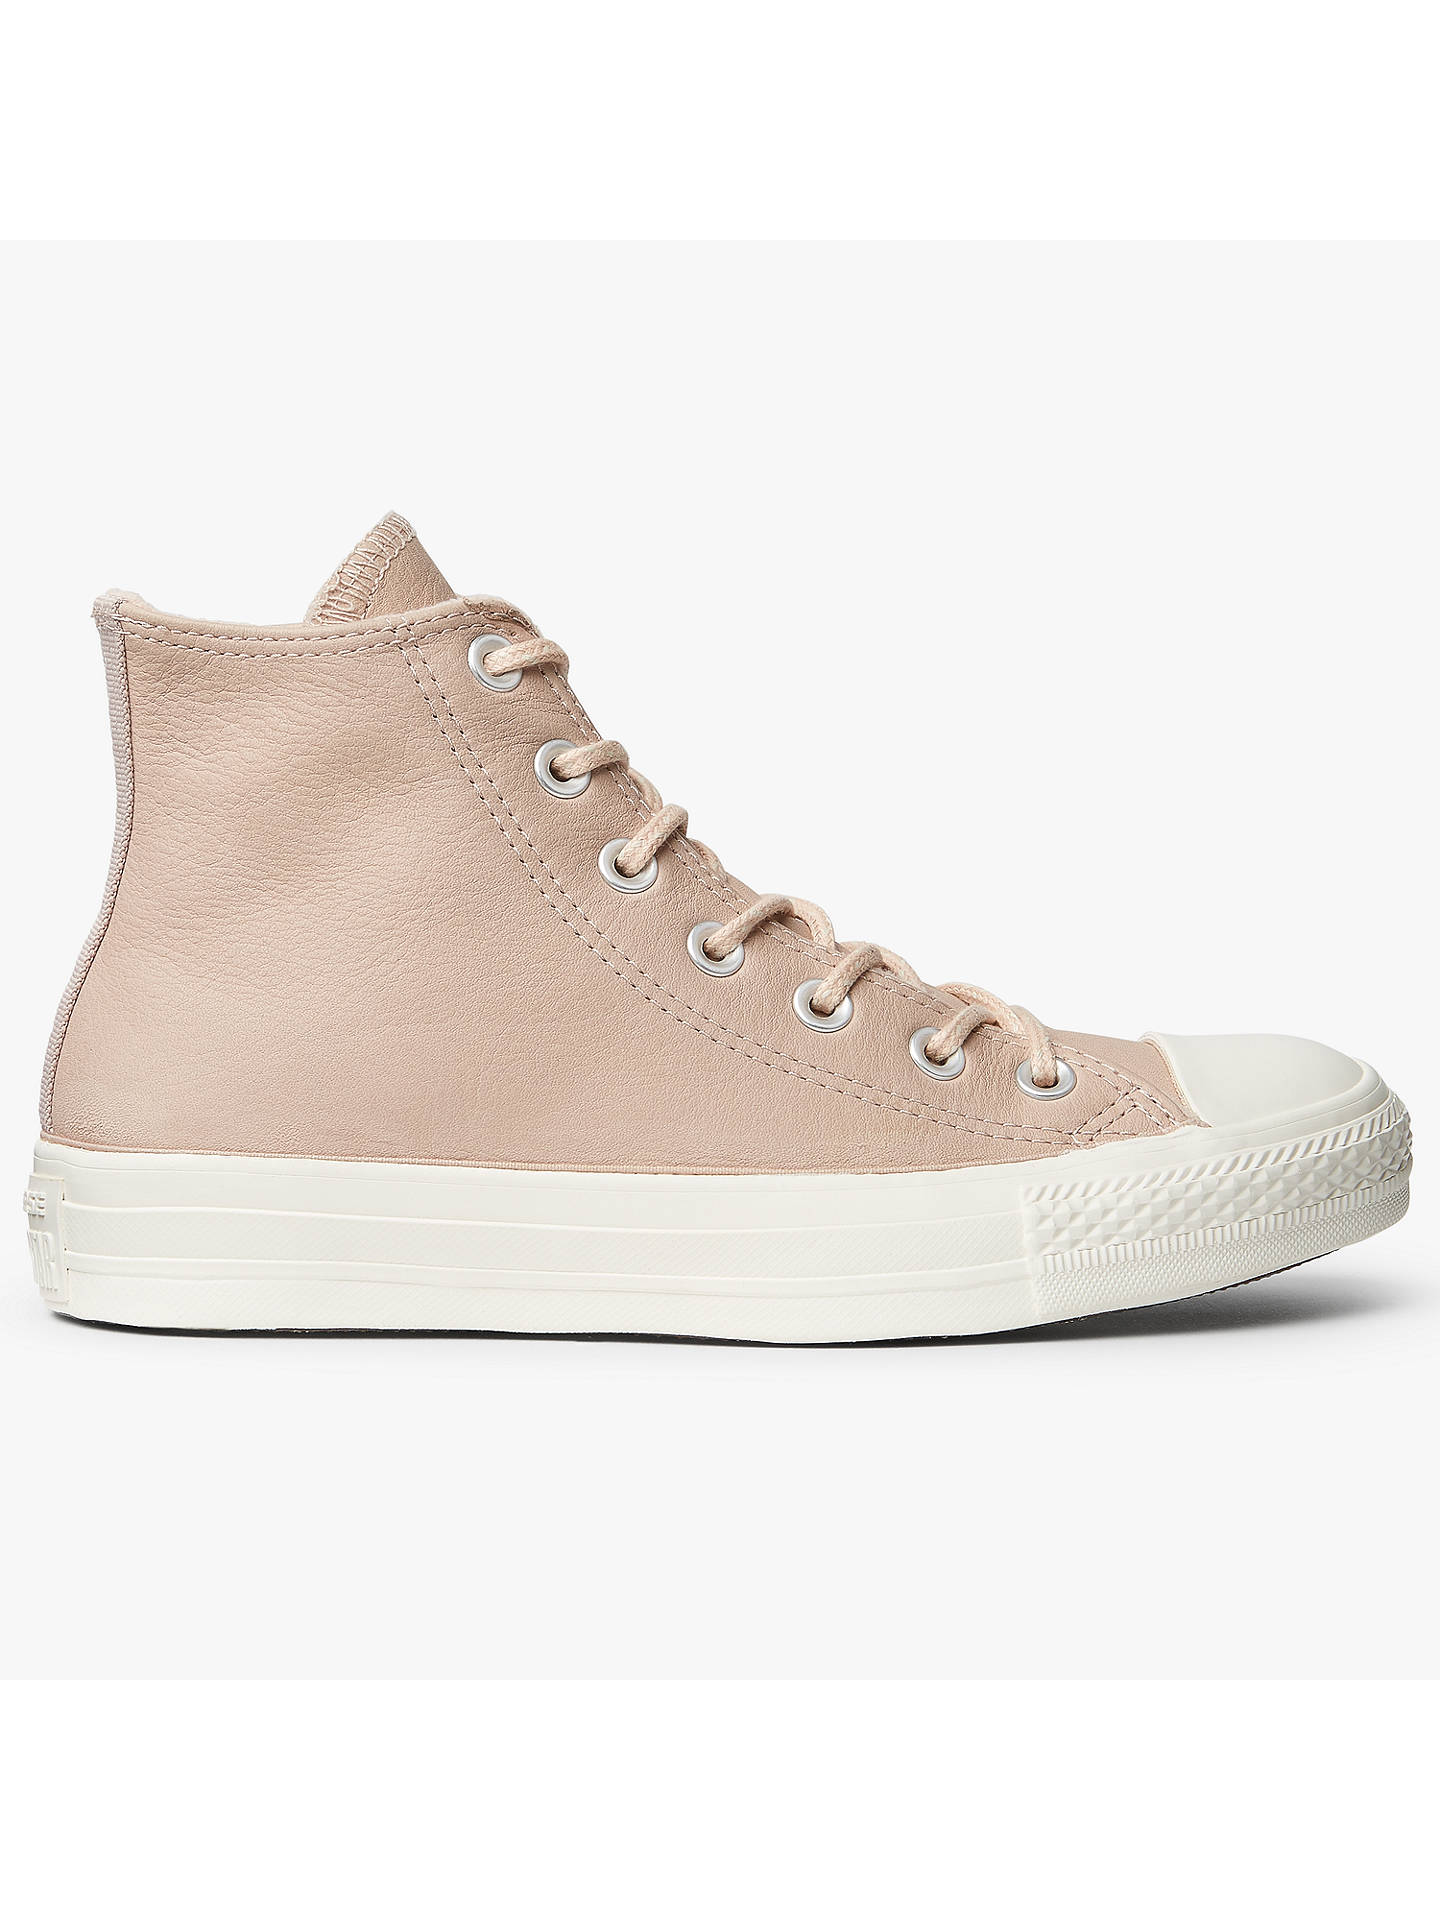 bb86ca74b95c39 Buy Converse Chuck Taylor All Star Ox High Top Trainers